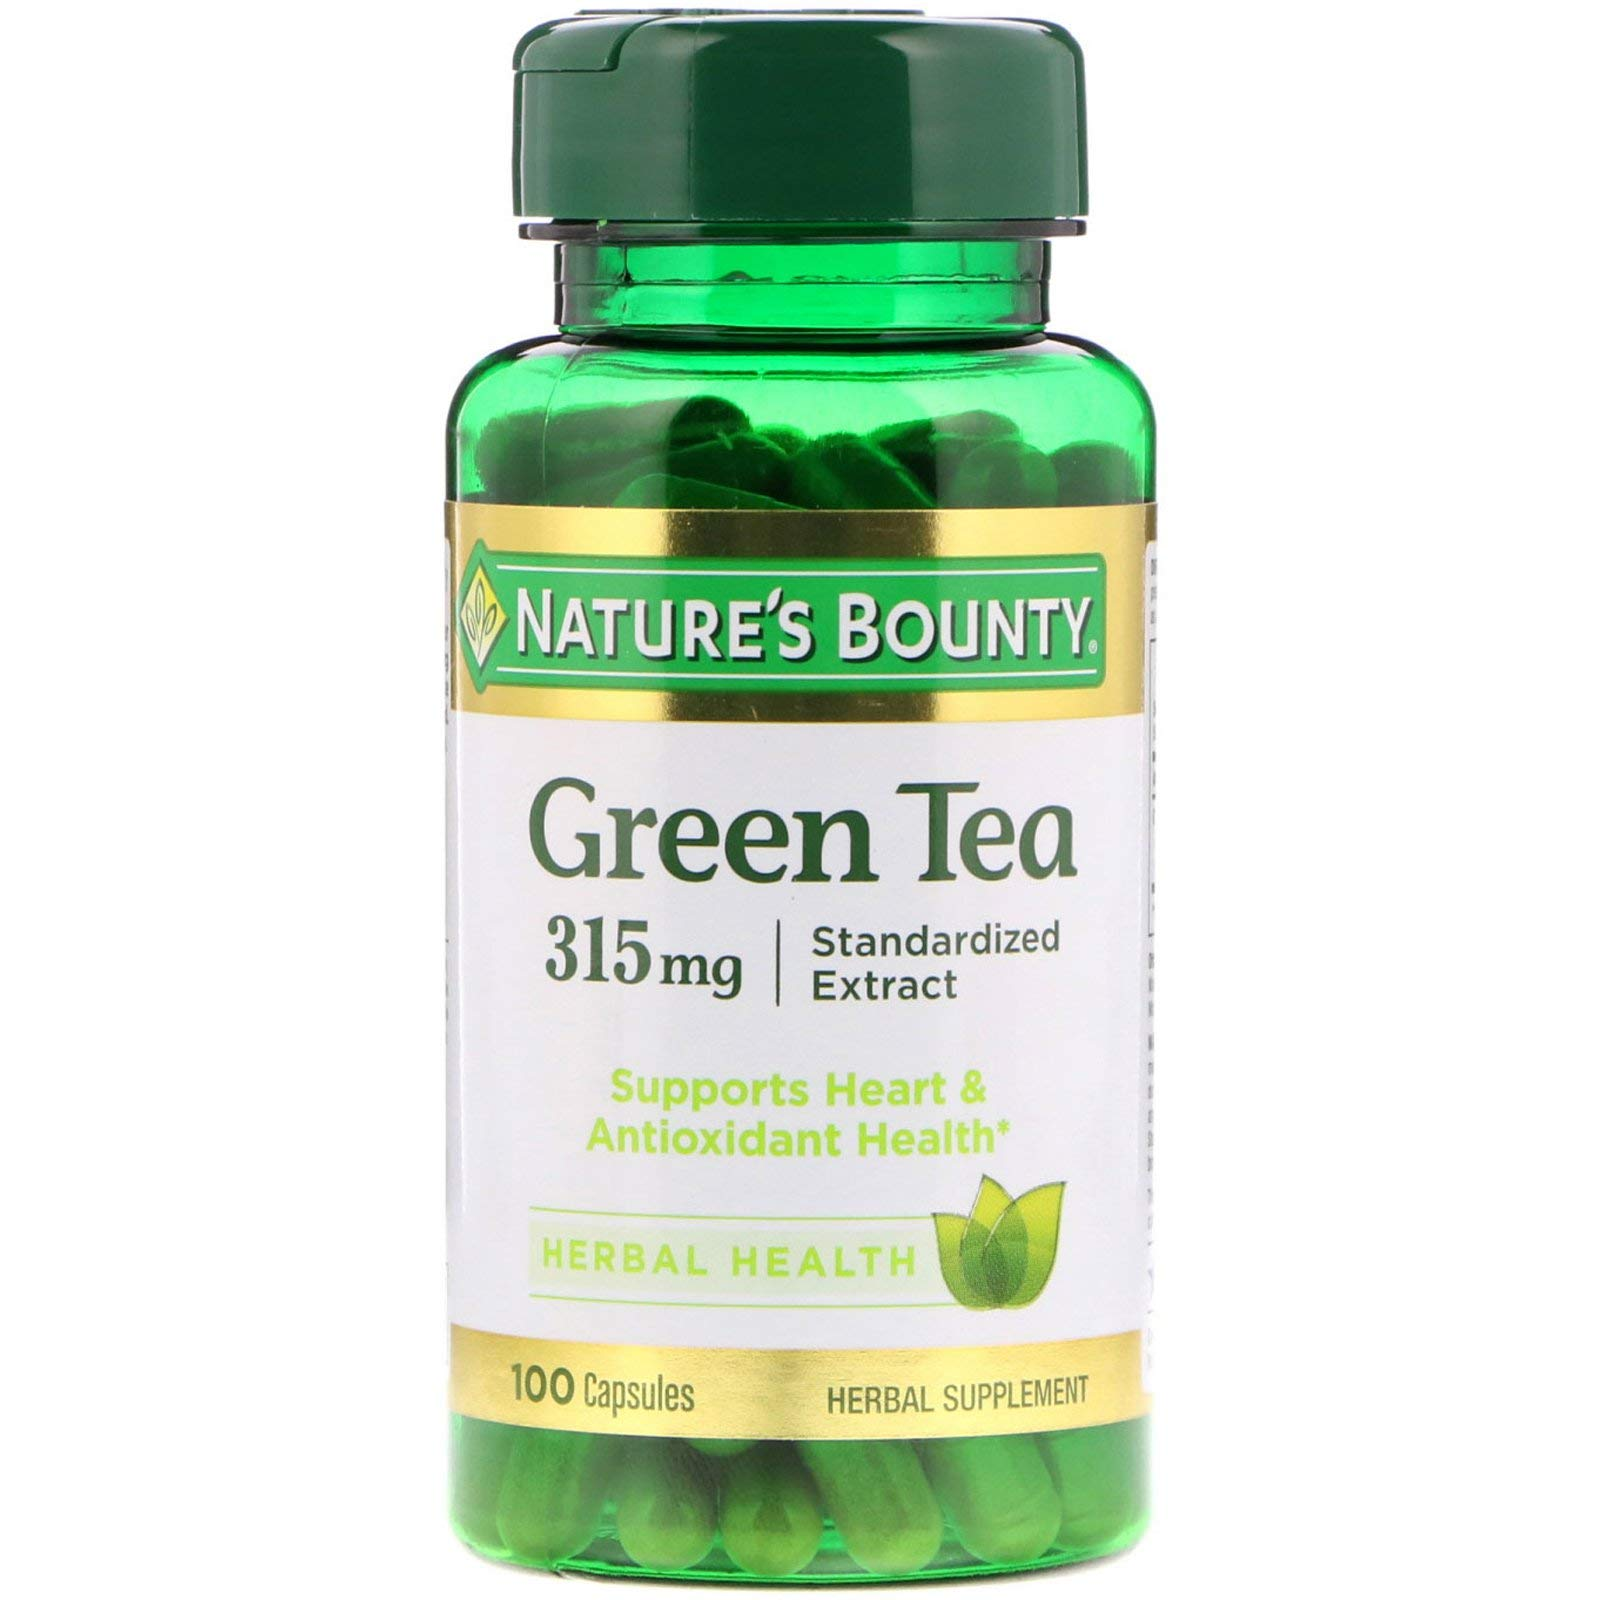 Nature's Bounty Green Tea Extract 315 mg Capsules 100 ea (Pack of 3) by Nature's Bounty